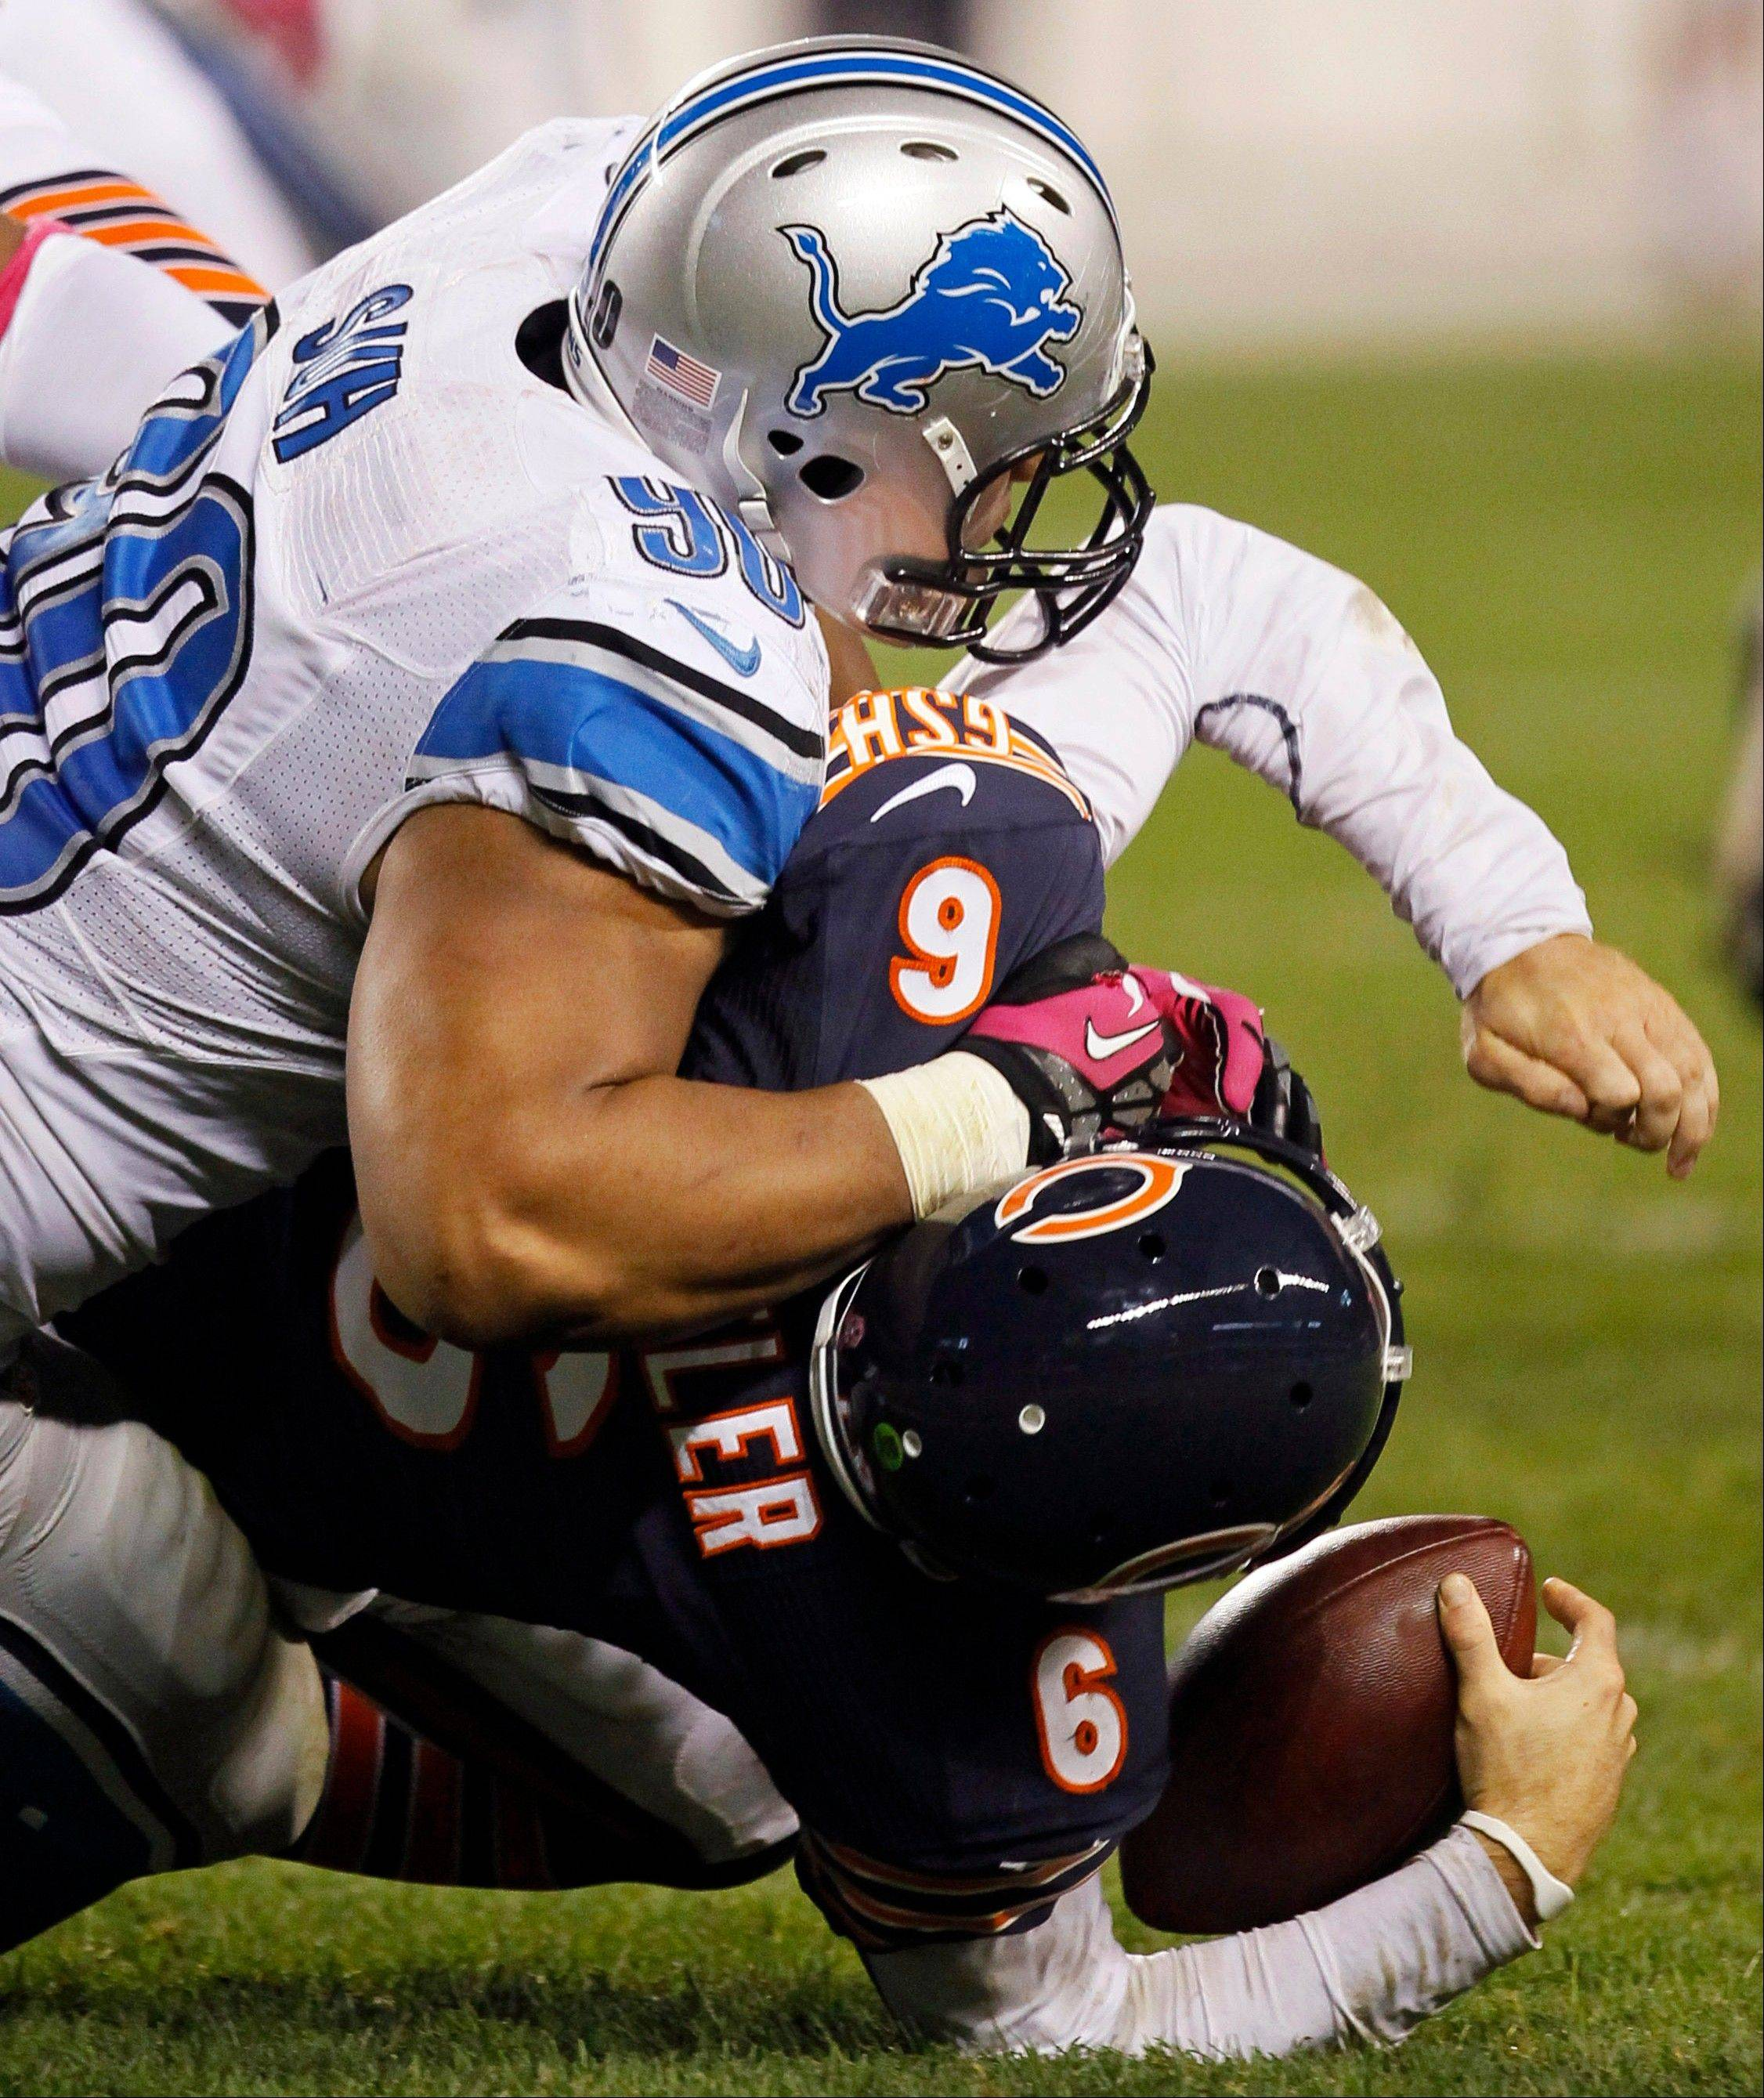 Bears quarterback Jay Cutler is sacked by the Lions' Ndamukong Suh in the first half Monday at Soldier Field.